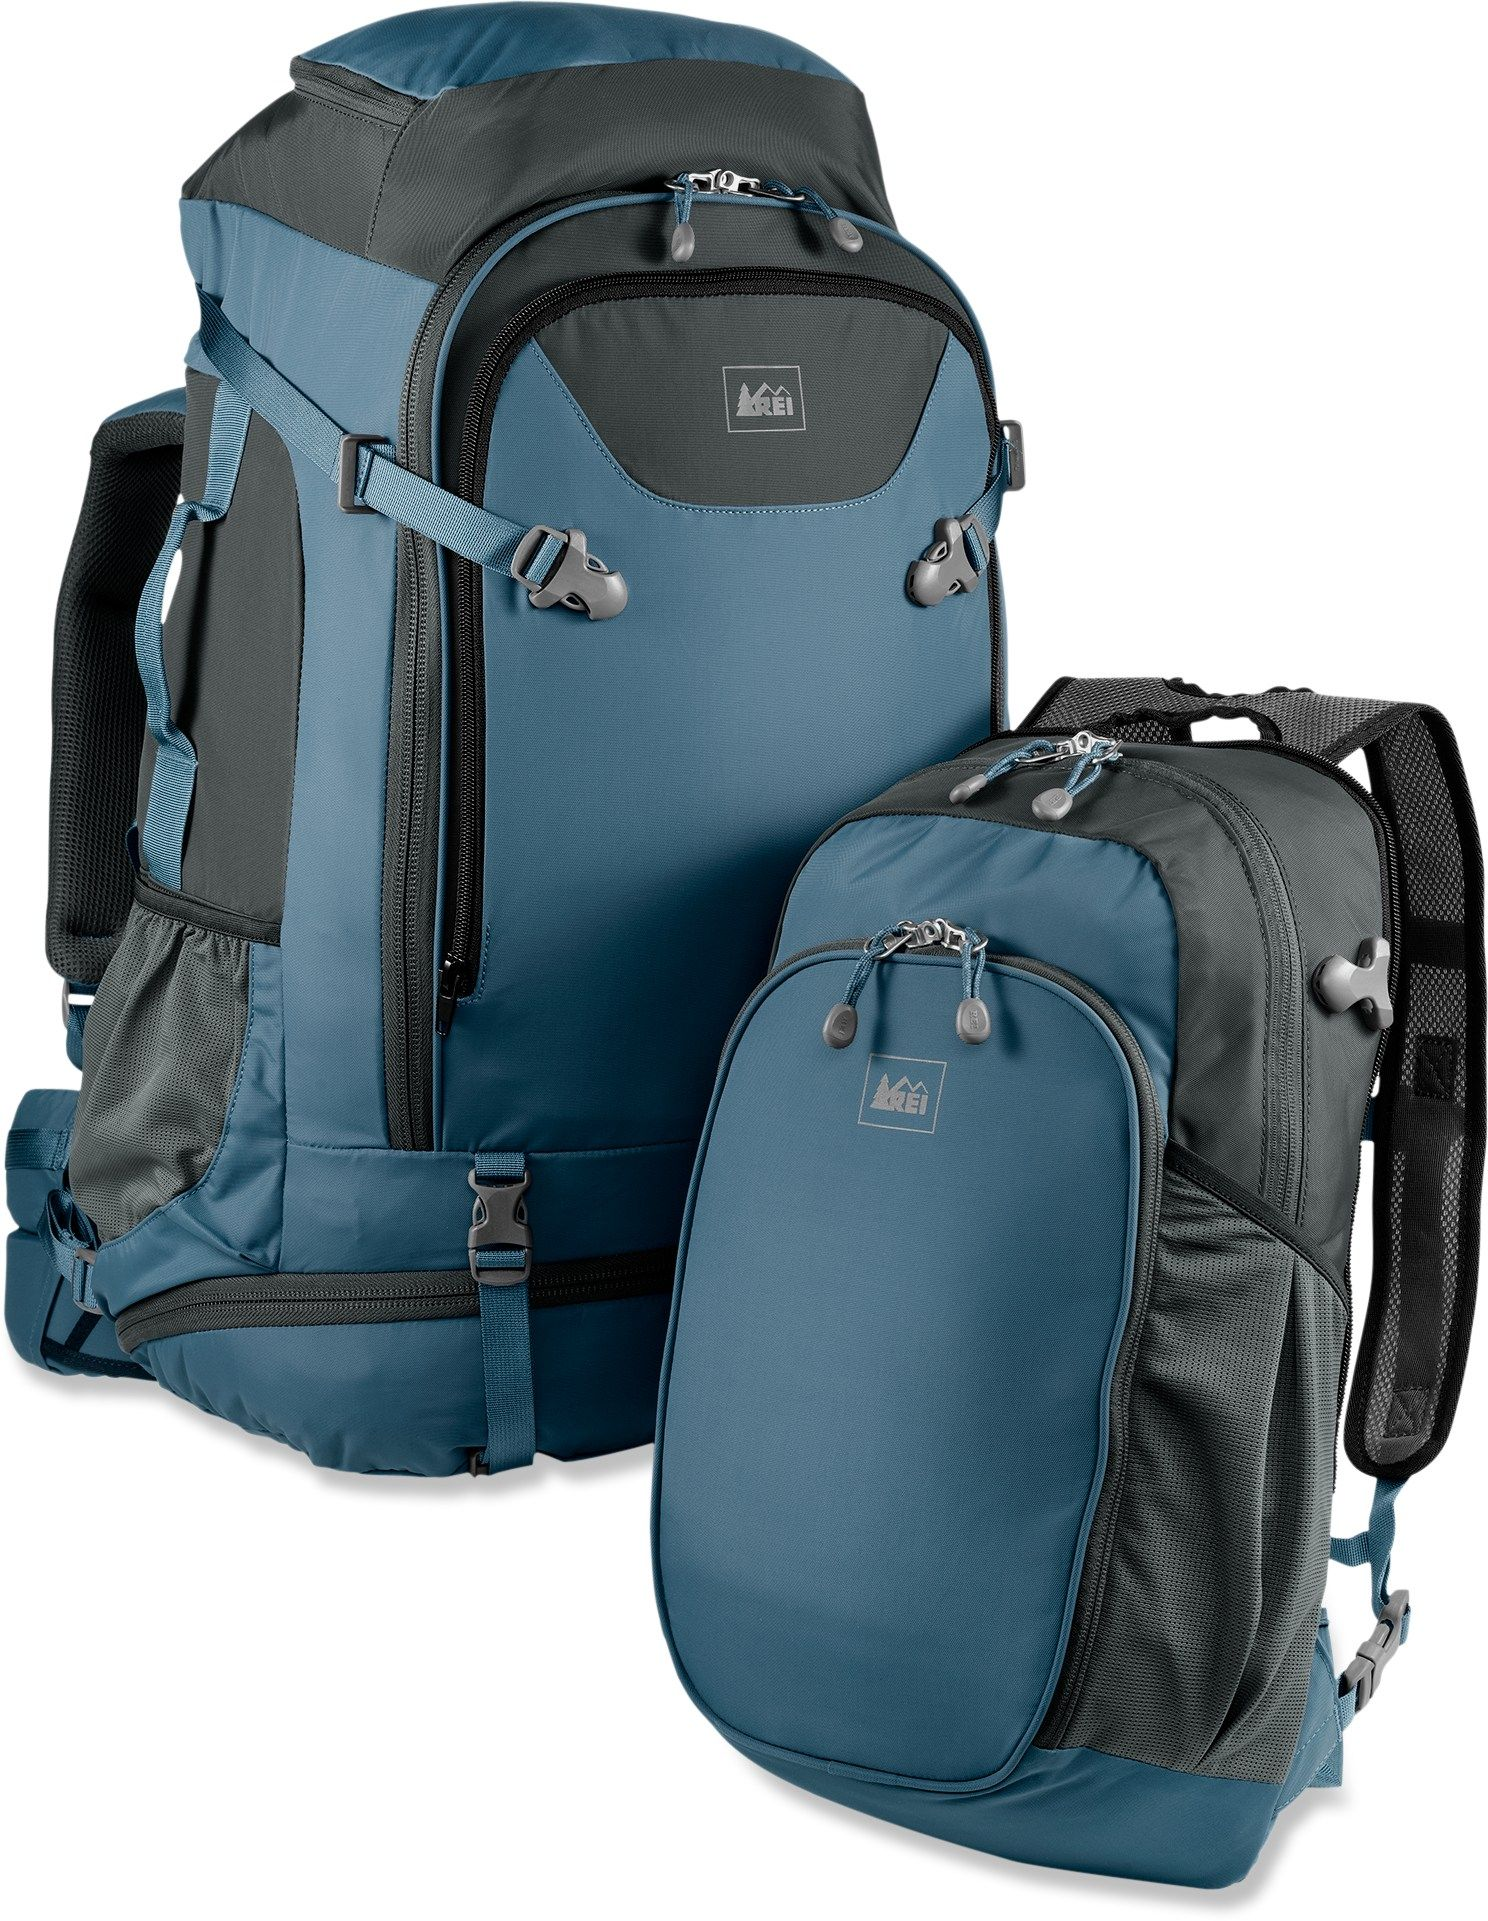 75f245f5d1 Co-op Grand Tour 80 Travel Pack - Women s